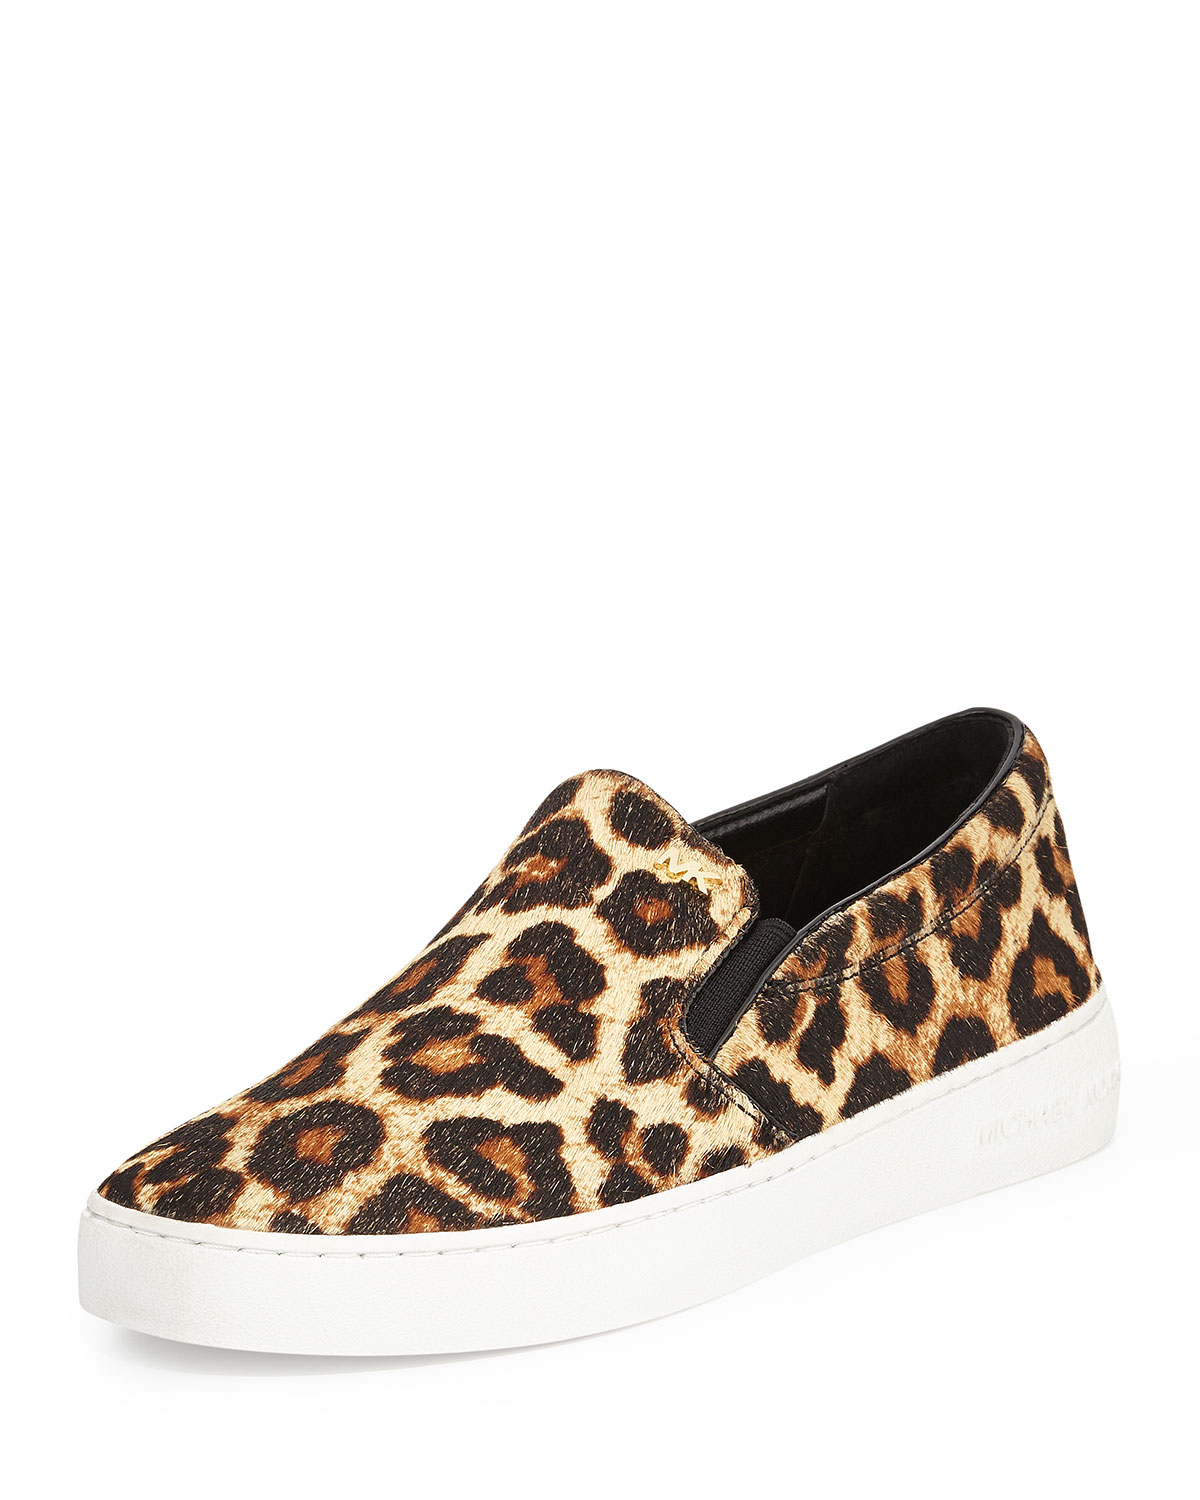 Shop for your next pair of Cheetah Print shoes on Zazzle. Order some of our sneakers, or slip your feet into a pair of our flip flops.